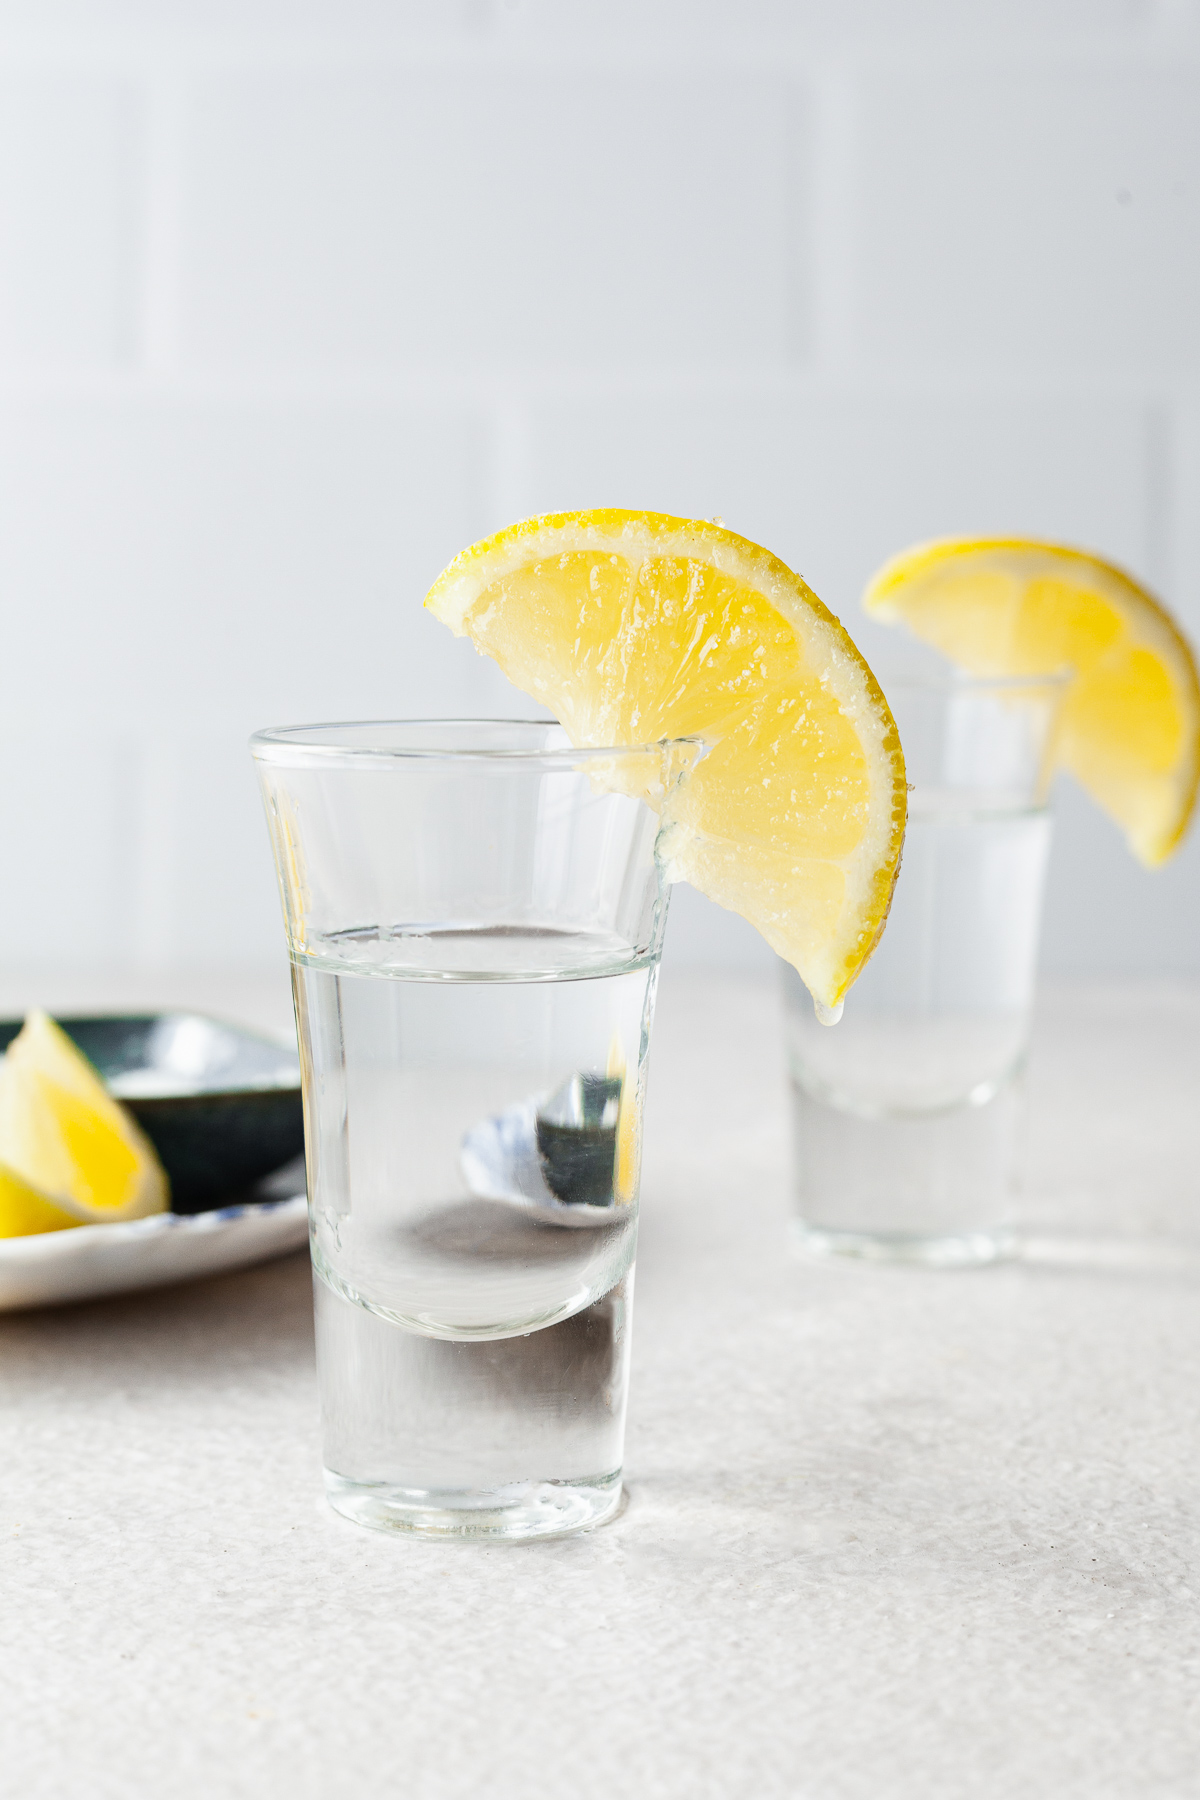 image of two lemon drop shots with lemon slices on glasses